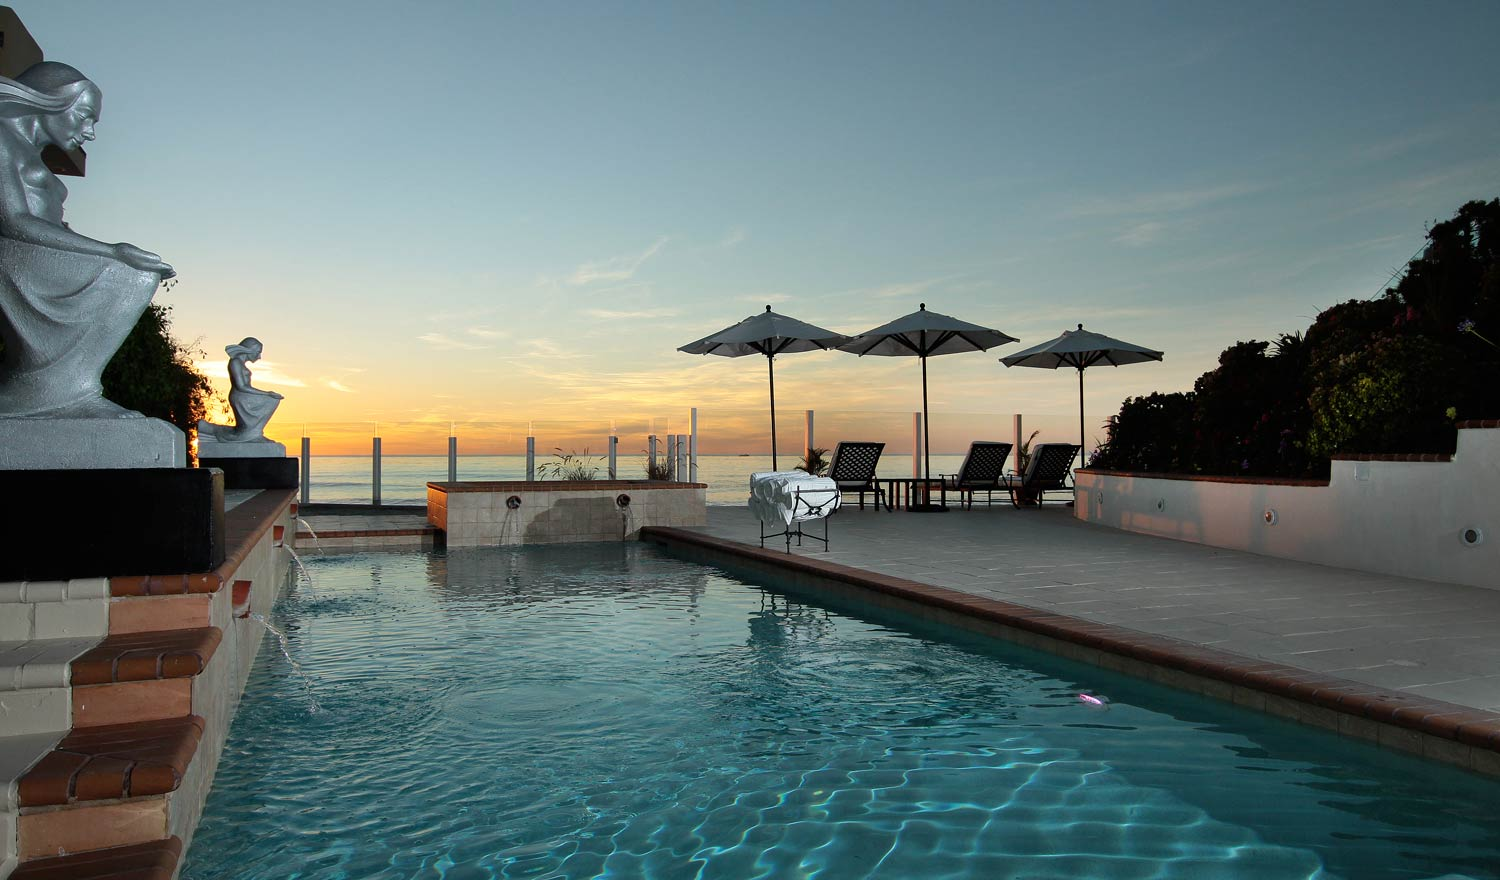 When high tide comes in, post up poolside and take a refreshing dip in the resort-style pool.